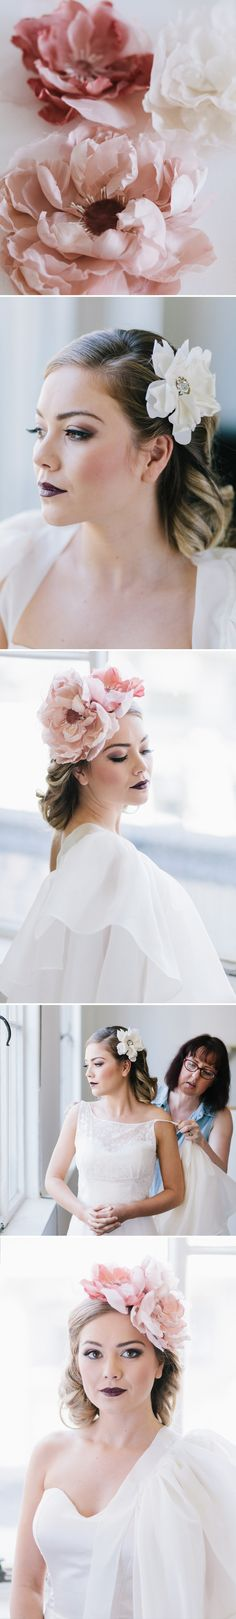 Sheer fabric flowers perfects that eclectic vintage wedding bridal look